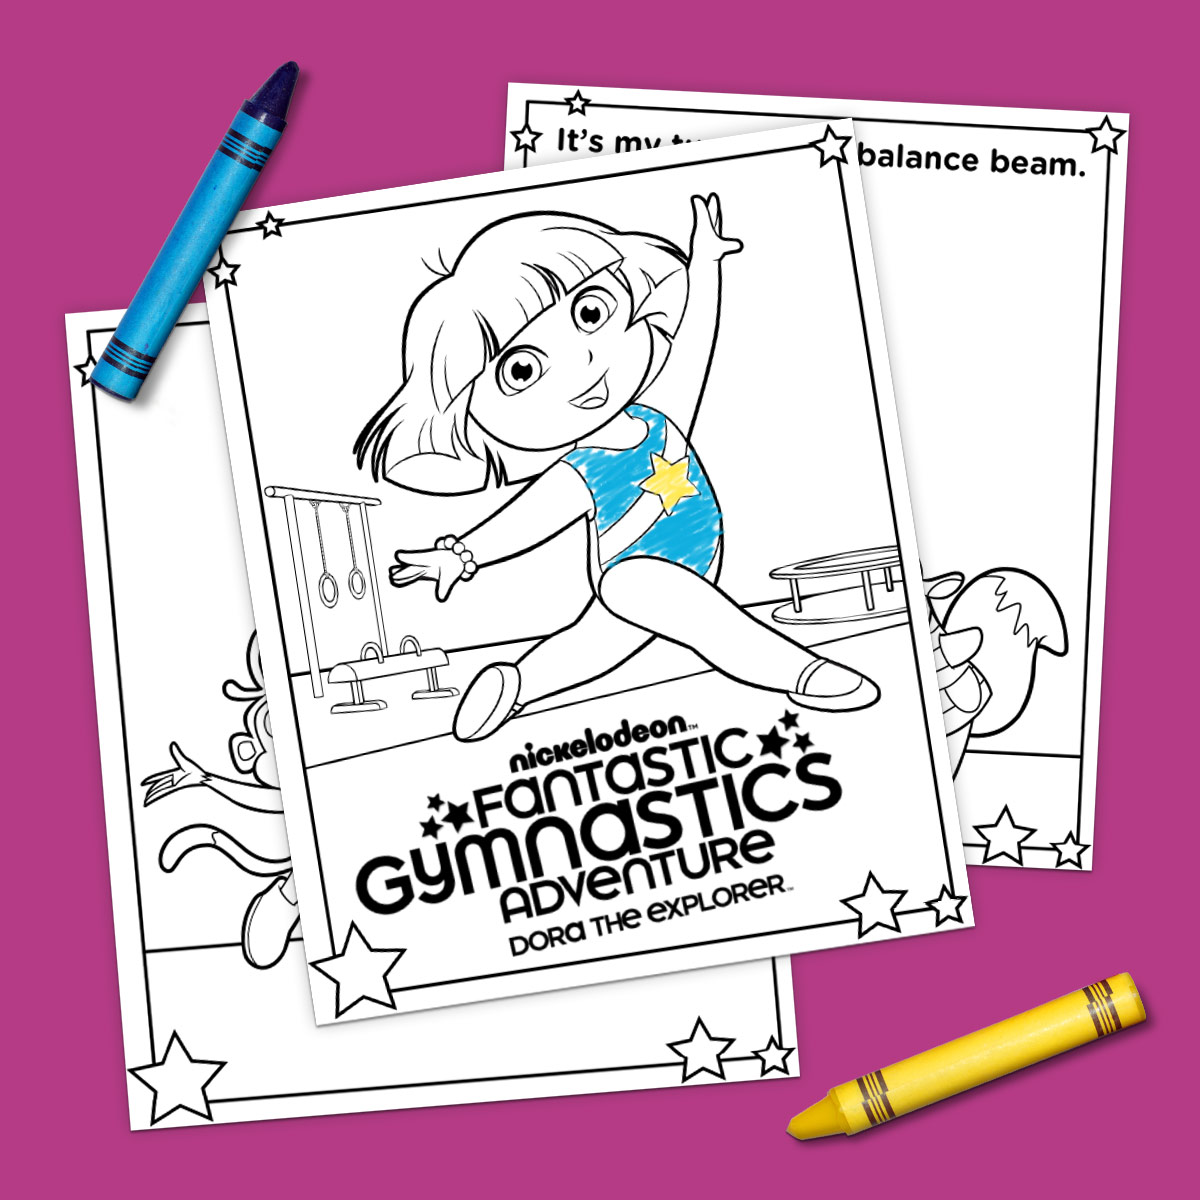 Coloring pictures gymnastics - Savesave To Pinterest Dora Gymnastics Coloring